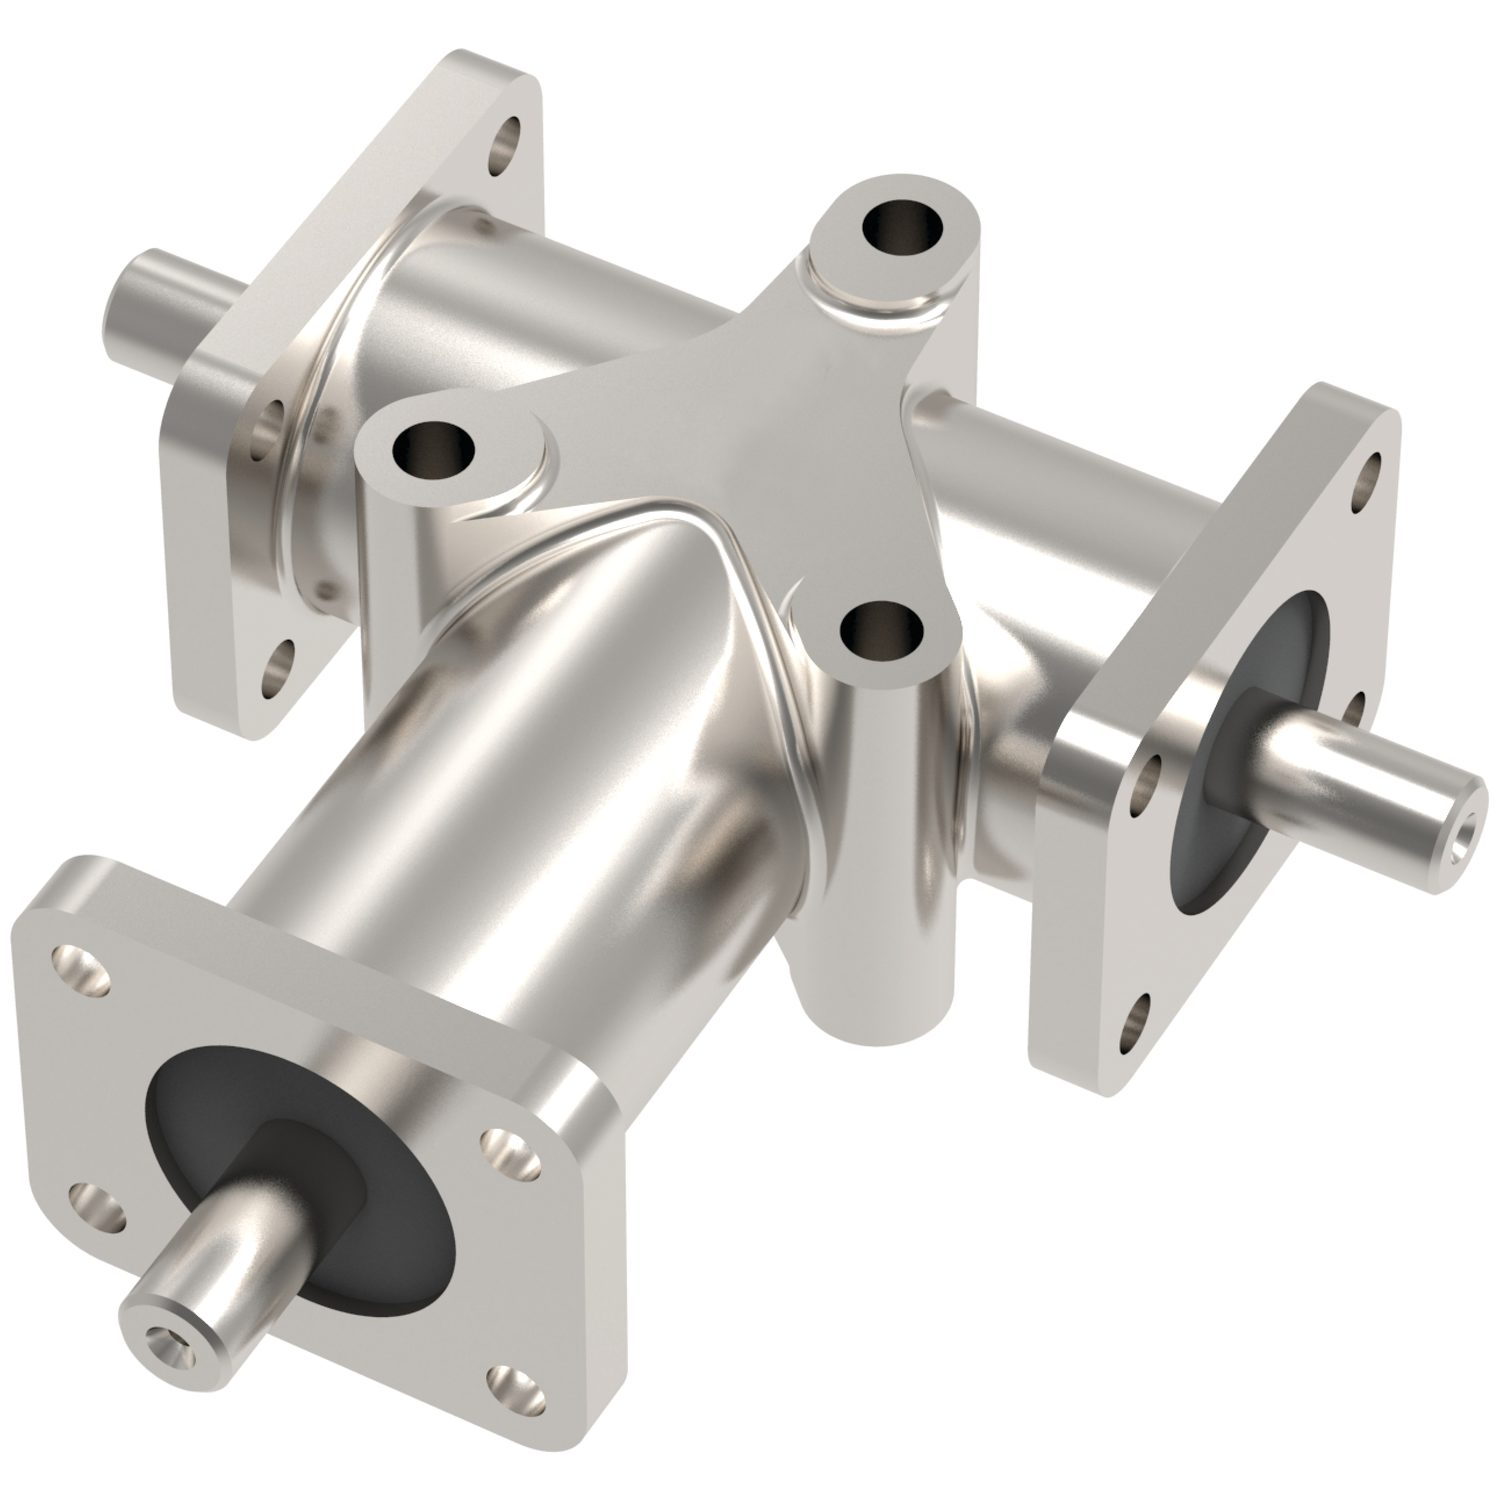 R2351 - Stainless Right Angle Drives - 3 Shafts